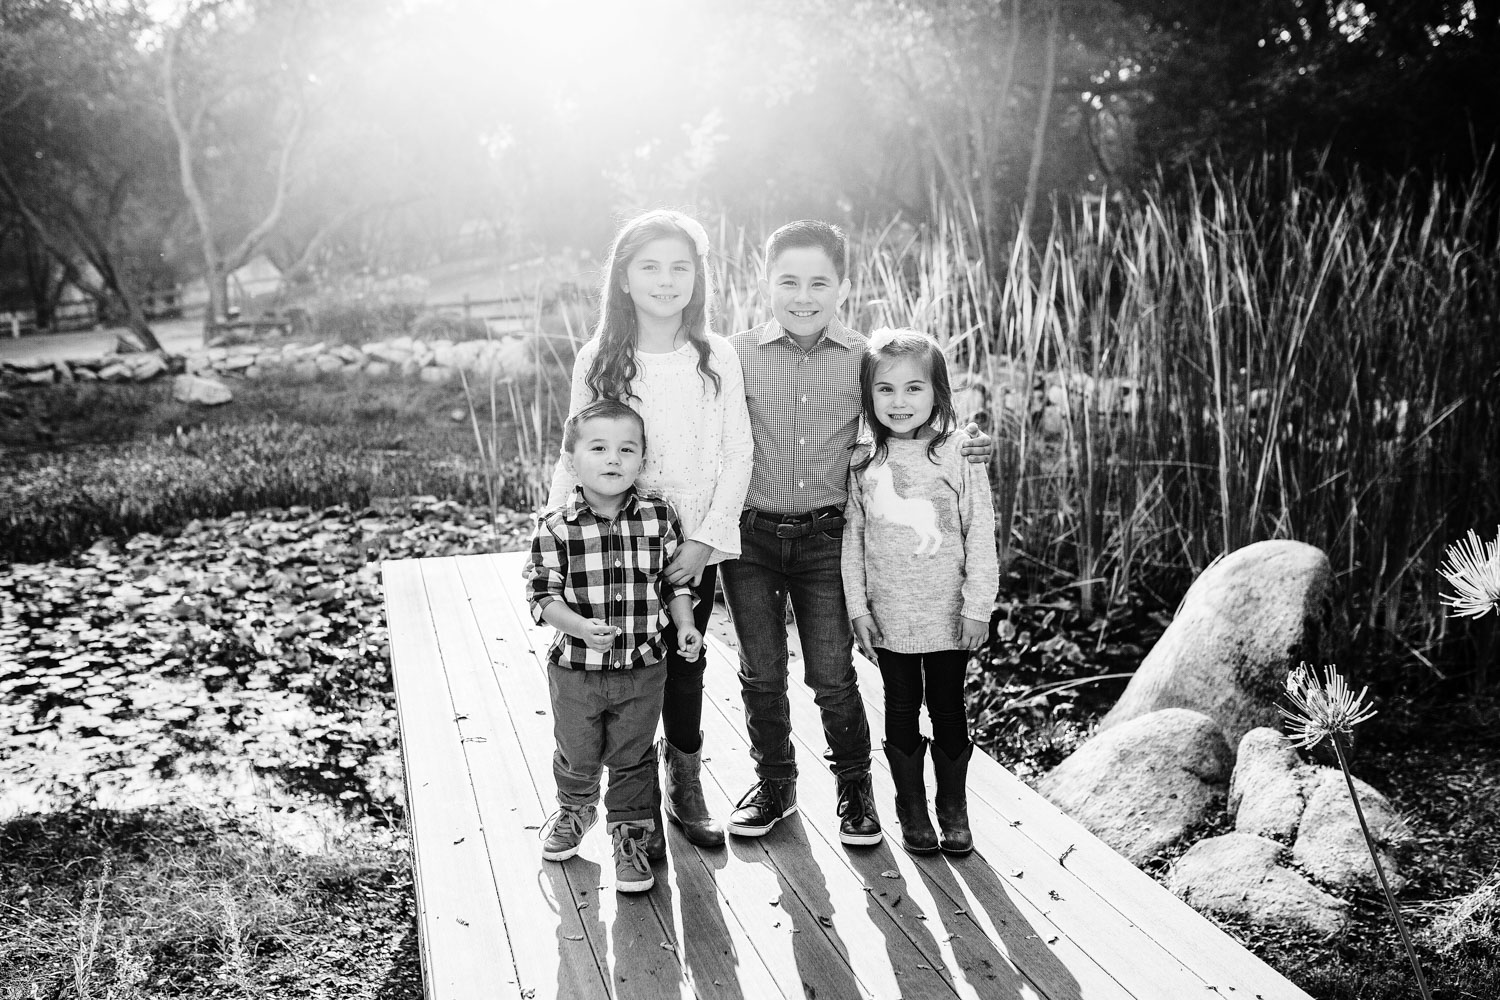 Four siblings pose at their home for a lifestyle picture with Amy Wright, who is based out of Roseville, California.